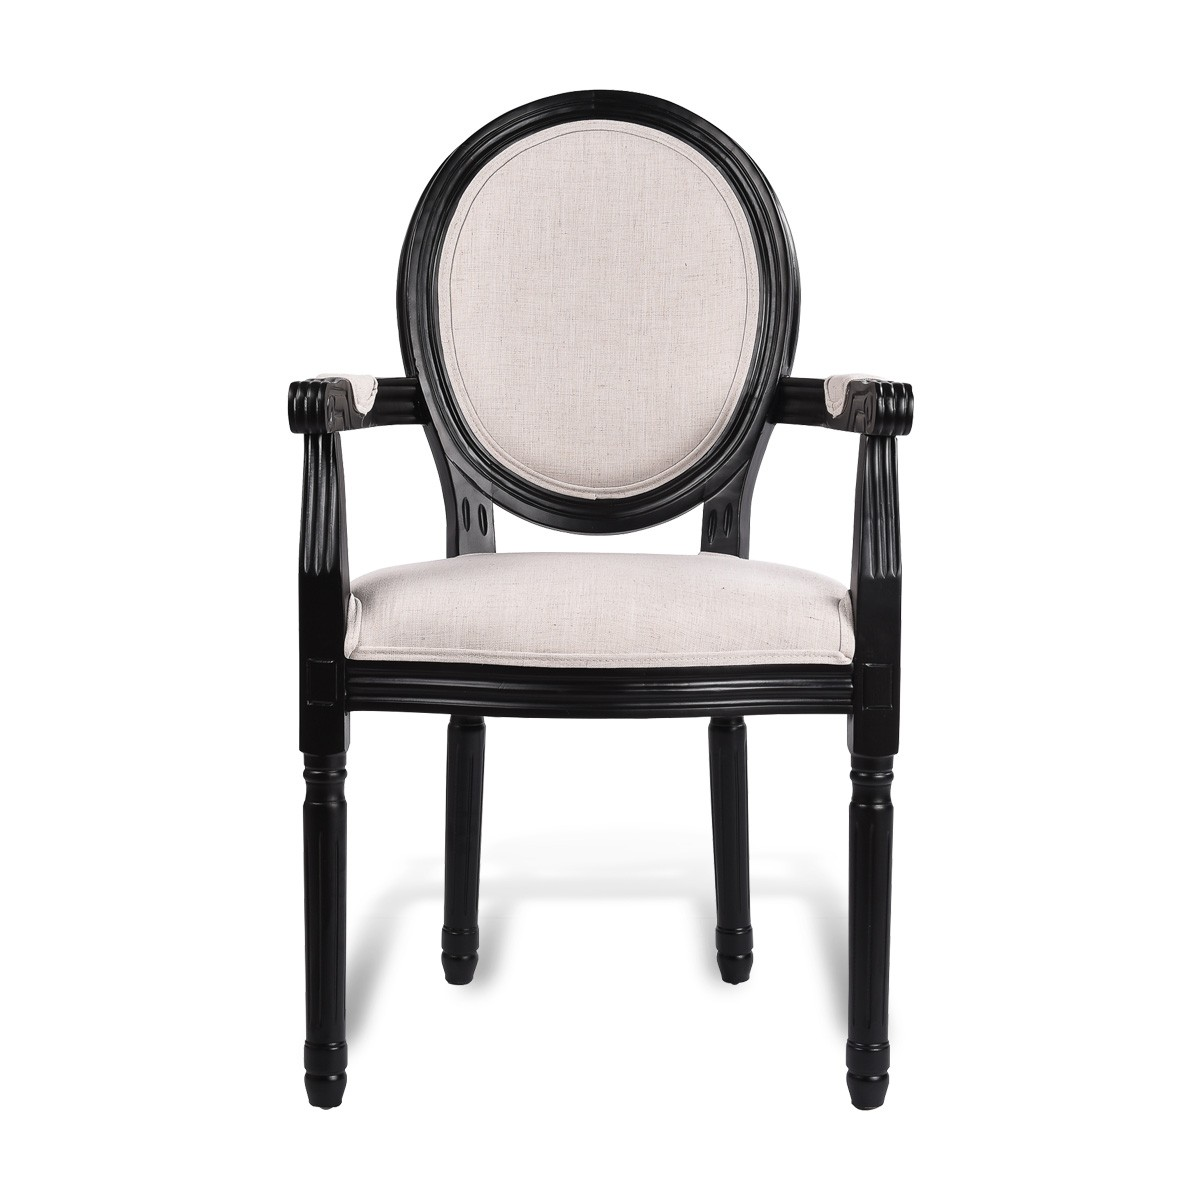 Charmant Louis Dining Armchair Set Of 2 French Provincial Upholstered Carver Chair  White Black Or Washed Oak ...